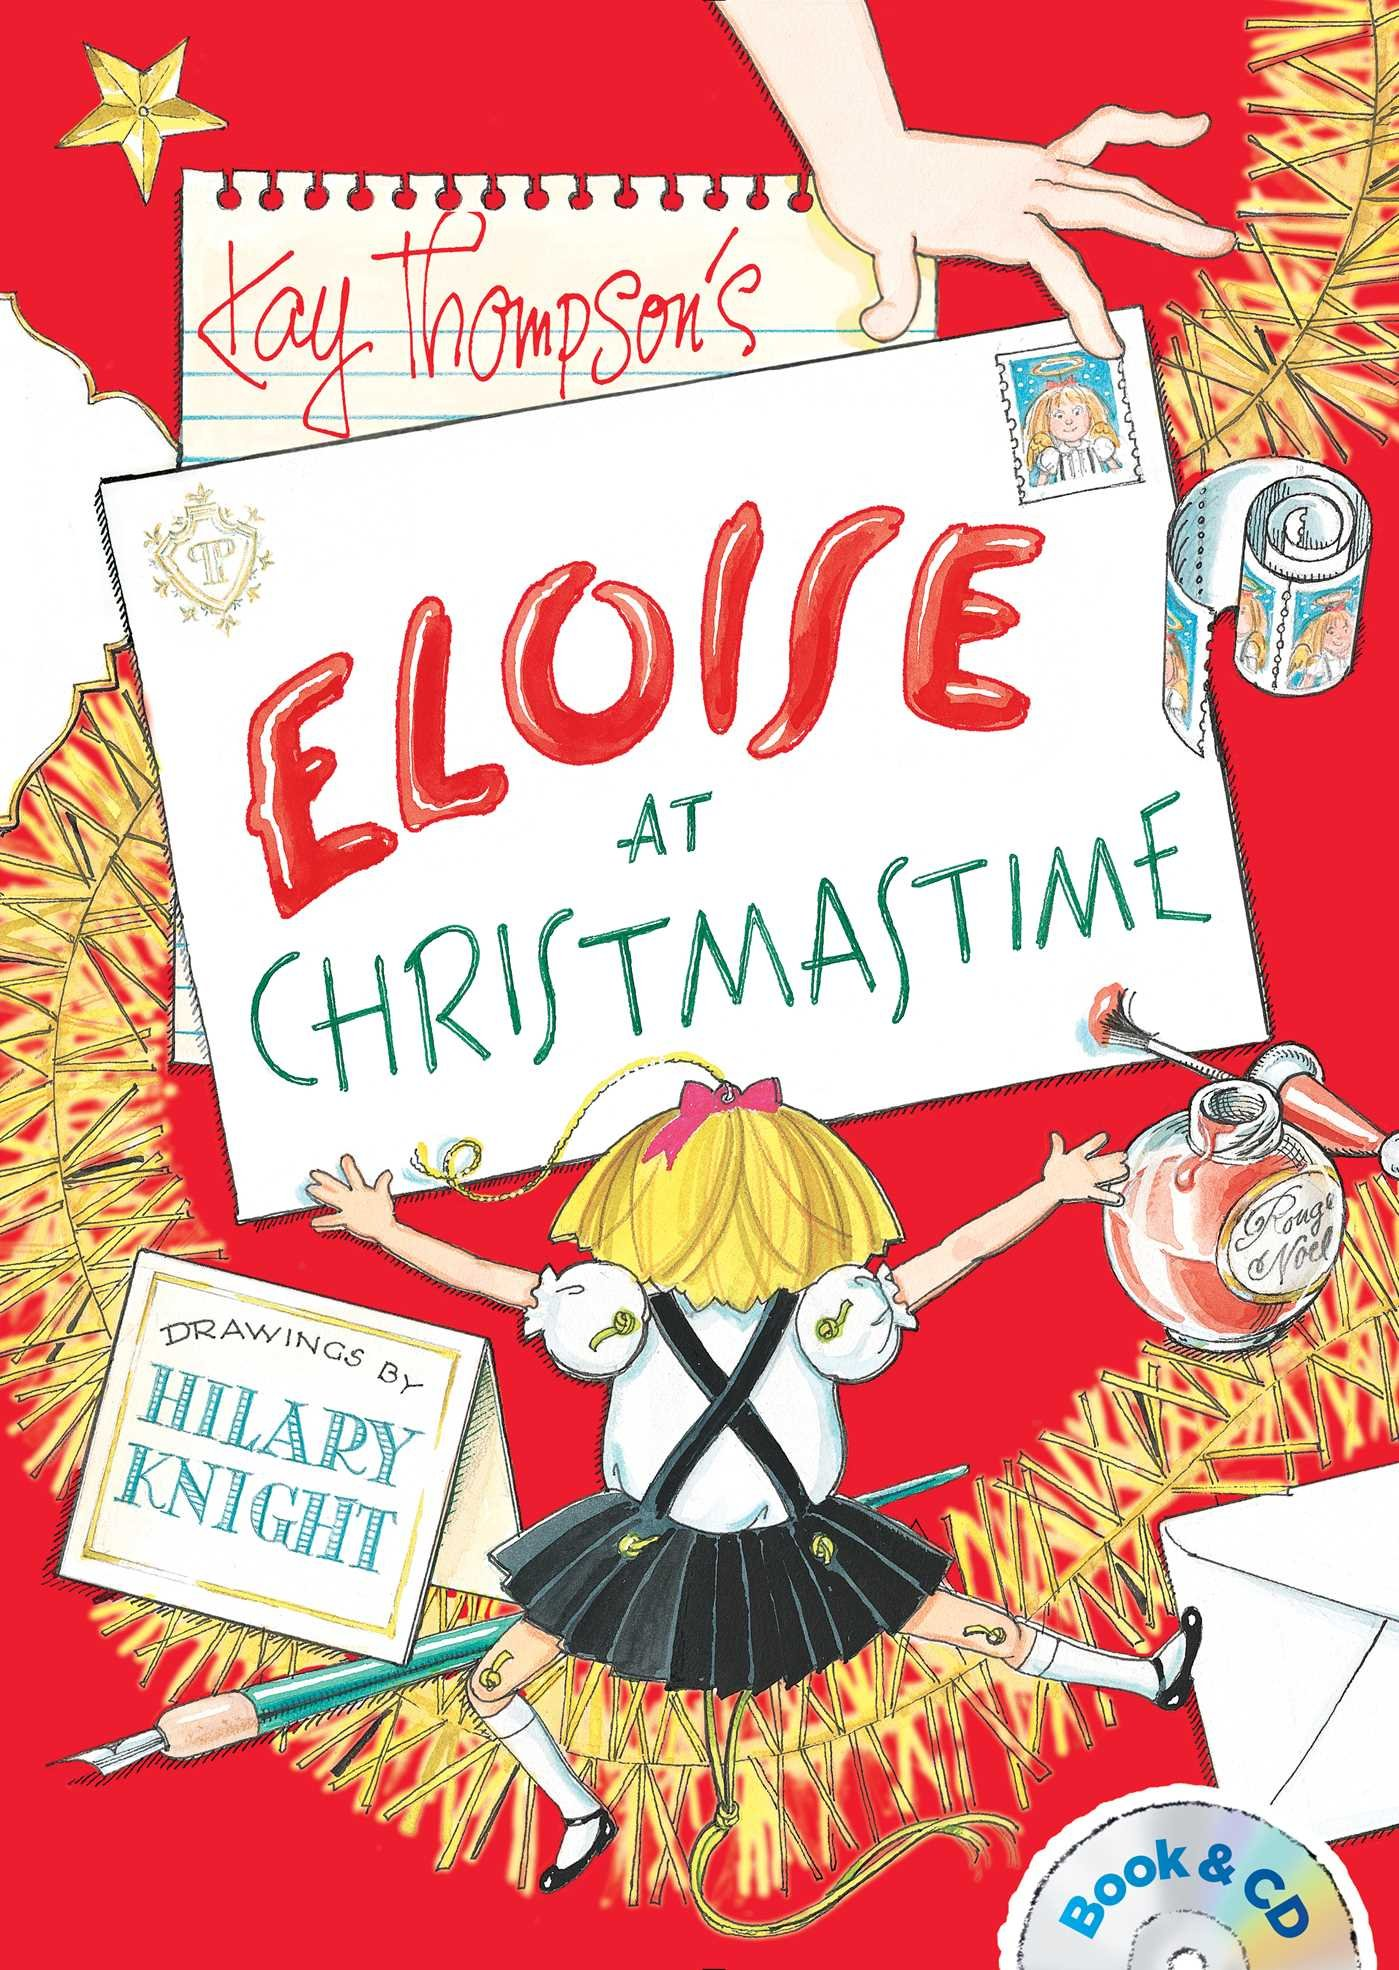 Christmas Specials: The poster for Eloise At Christmastime (2003).